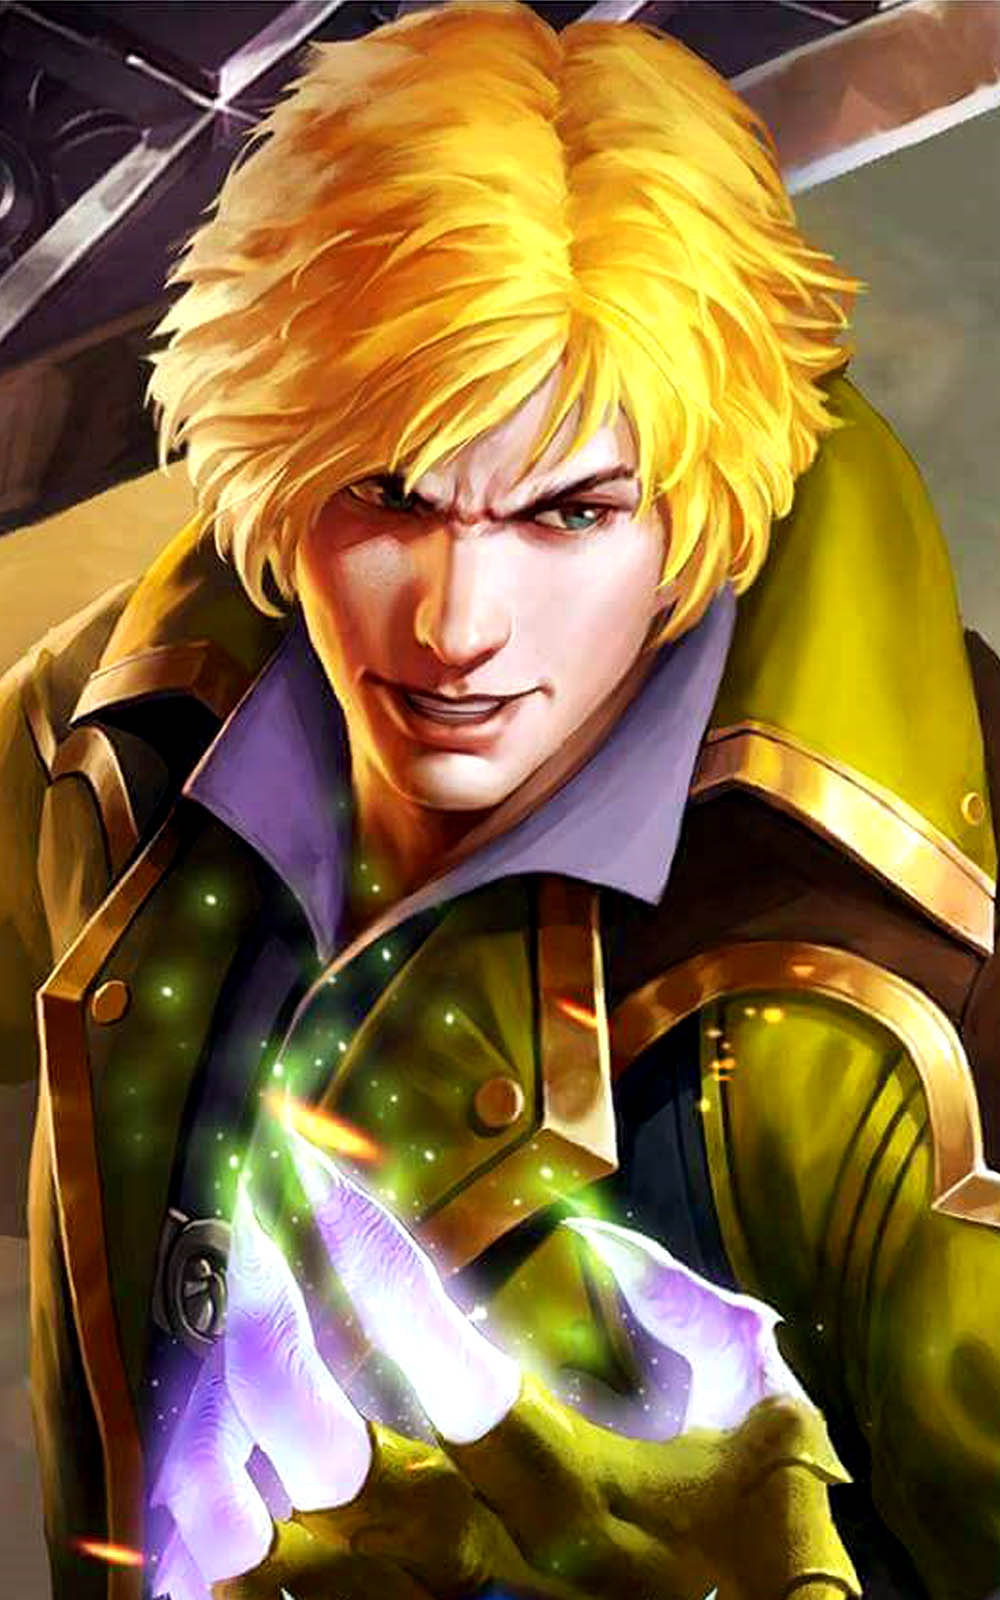 Download Lone Hero Alucard Mobile Legends Free Pure 4K